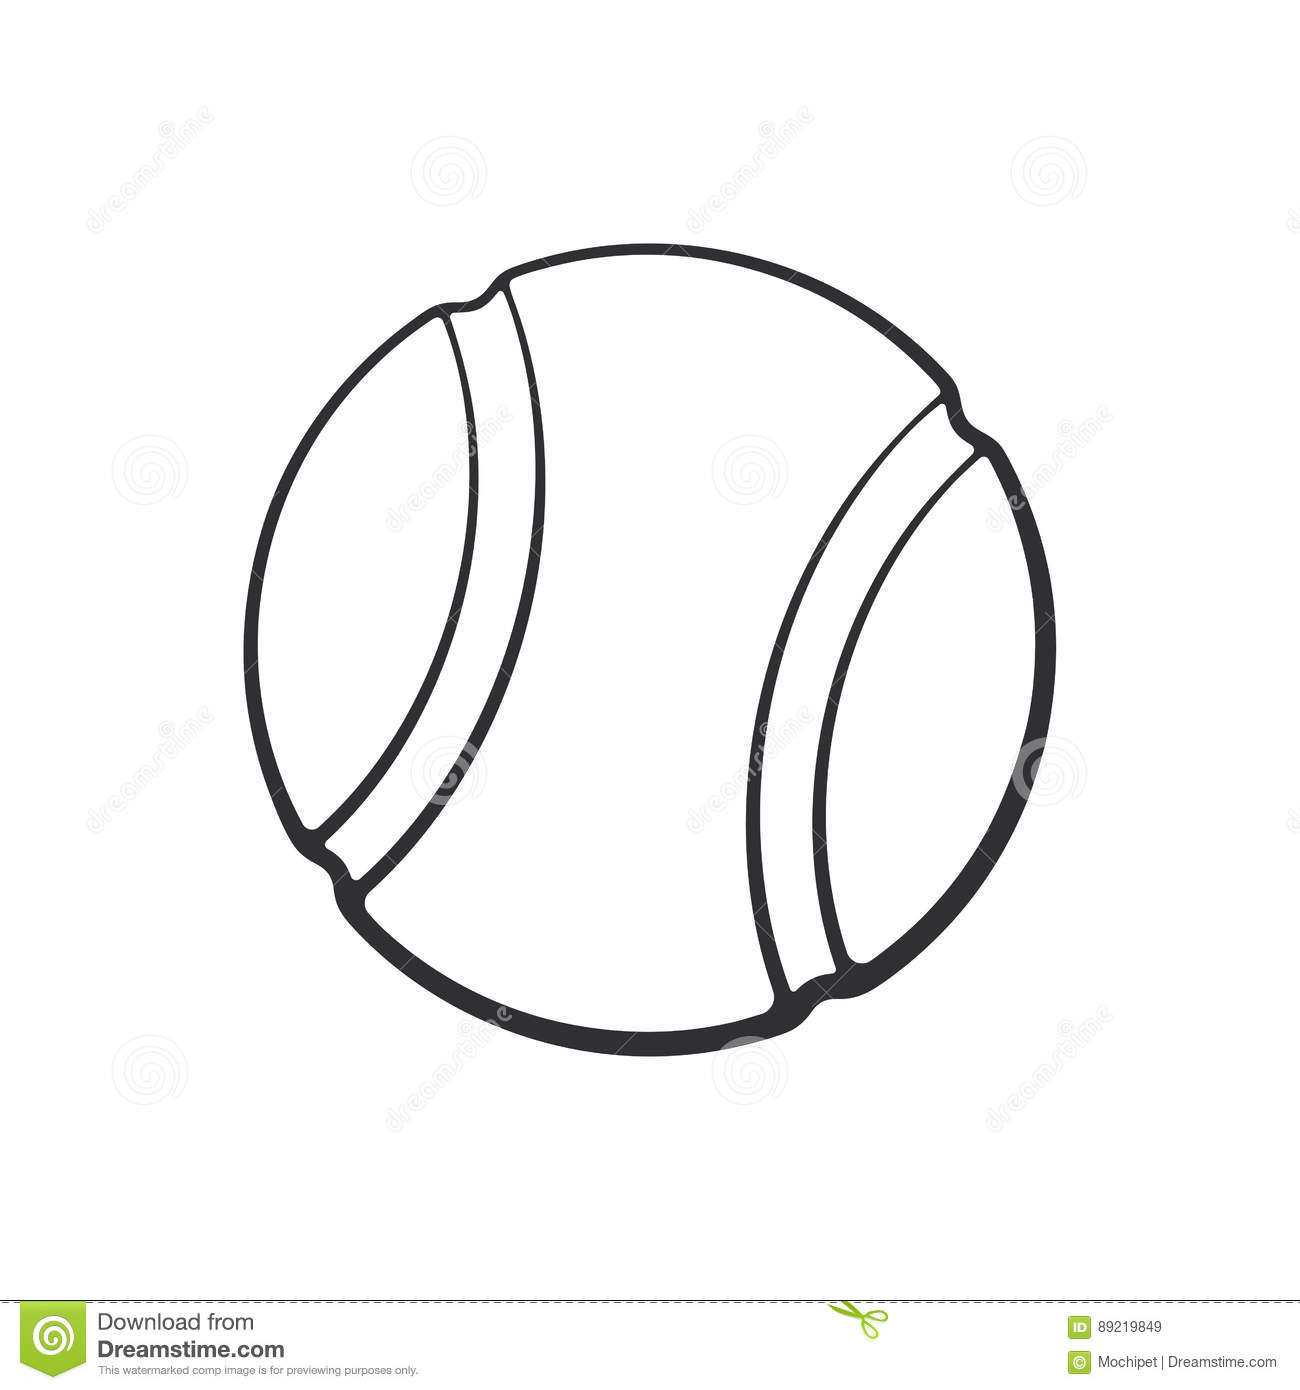 Doodle Of Tennis Ball Stock Vector Illustration Of Design